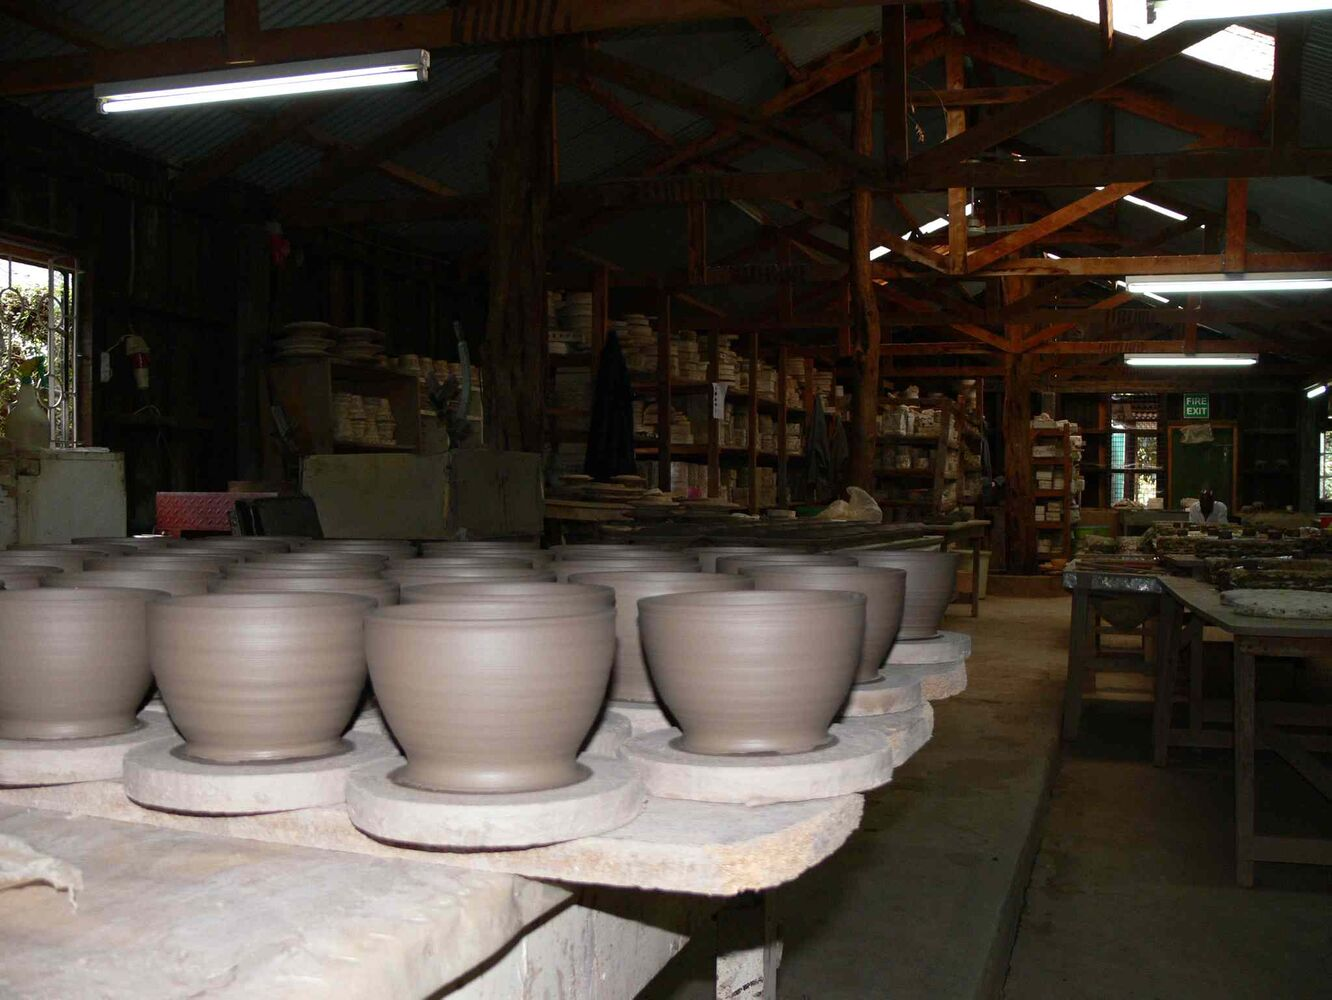 Clay bowls dry at Kazuri. The beautiful things they make are sold around the world - including Winnipeg where their products are sold at the Ten Thousand Villages stores.